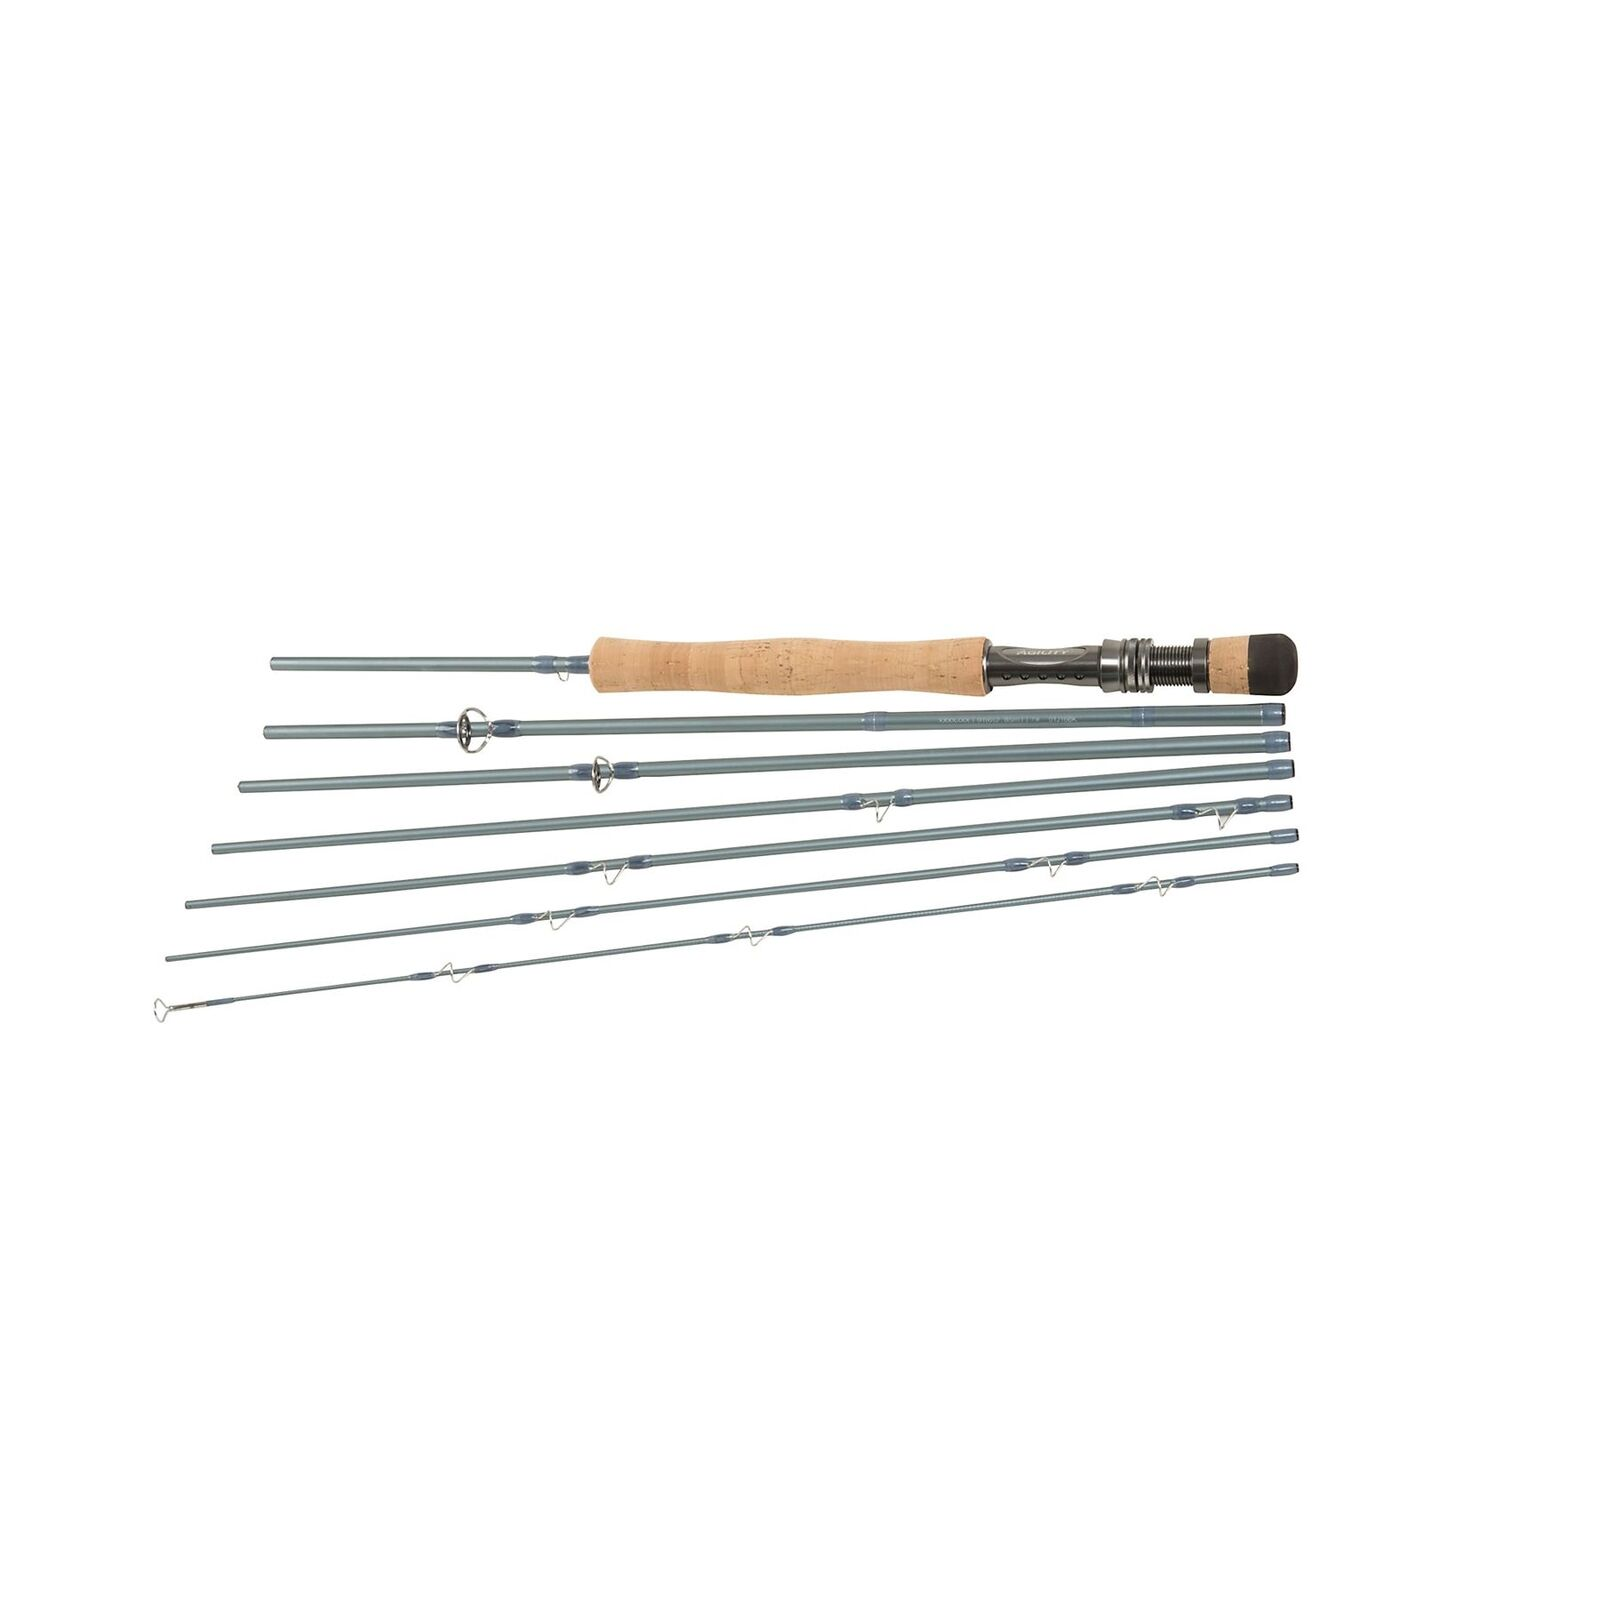 New Shakespeare Agility 2 EXP Travel Fly Fishing Rod 10ft #7 7pc 1436384